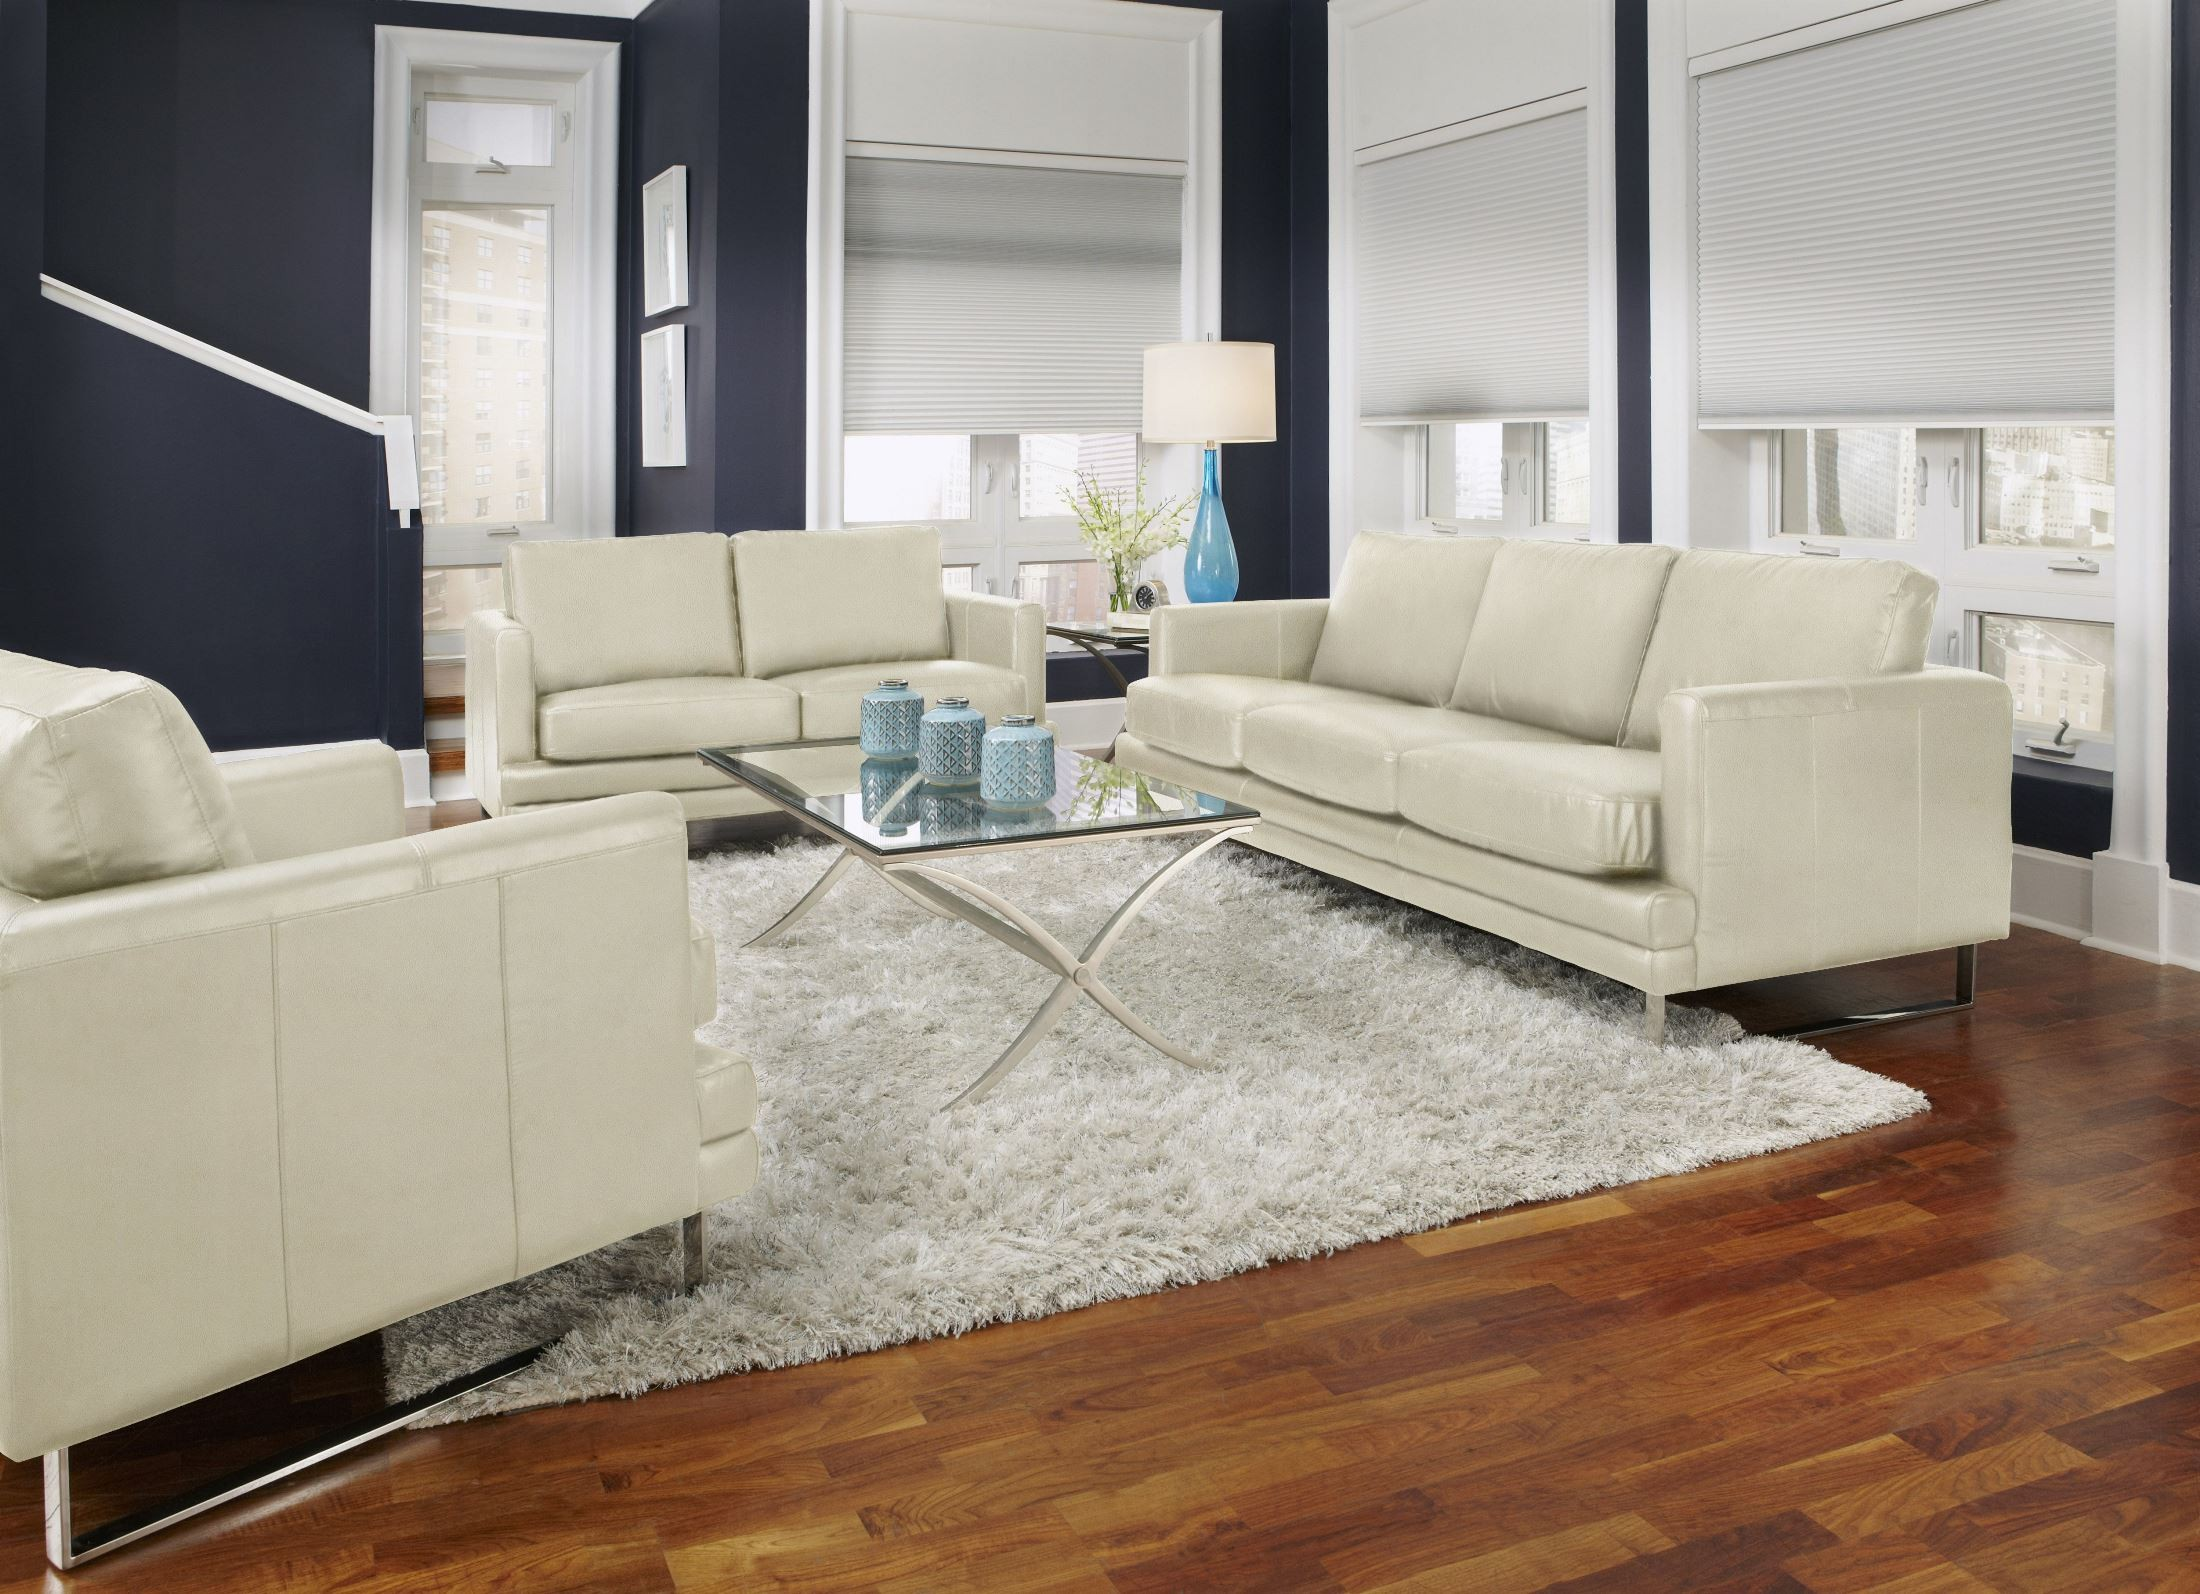 Melbourne White Leather Living Room Set From Lazzaro Wh